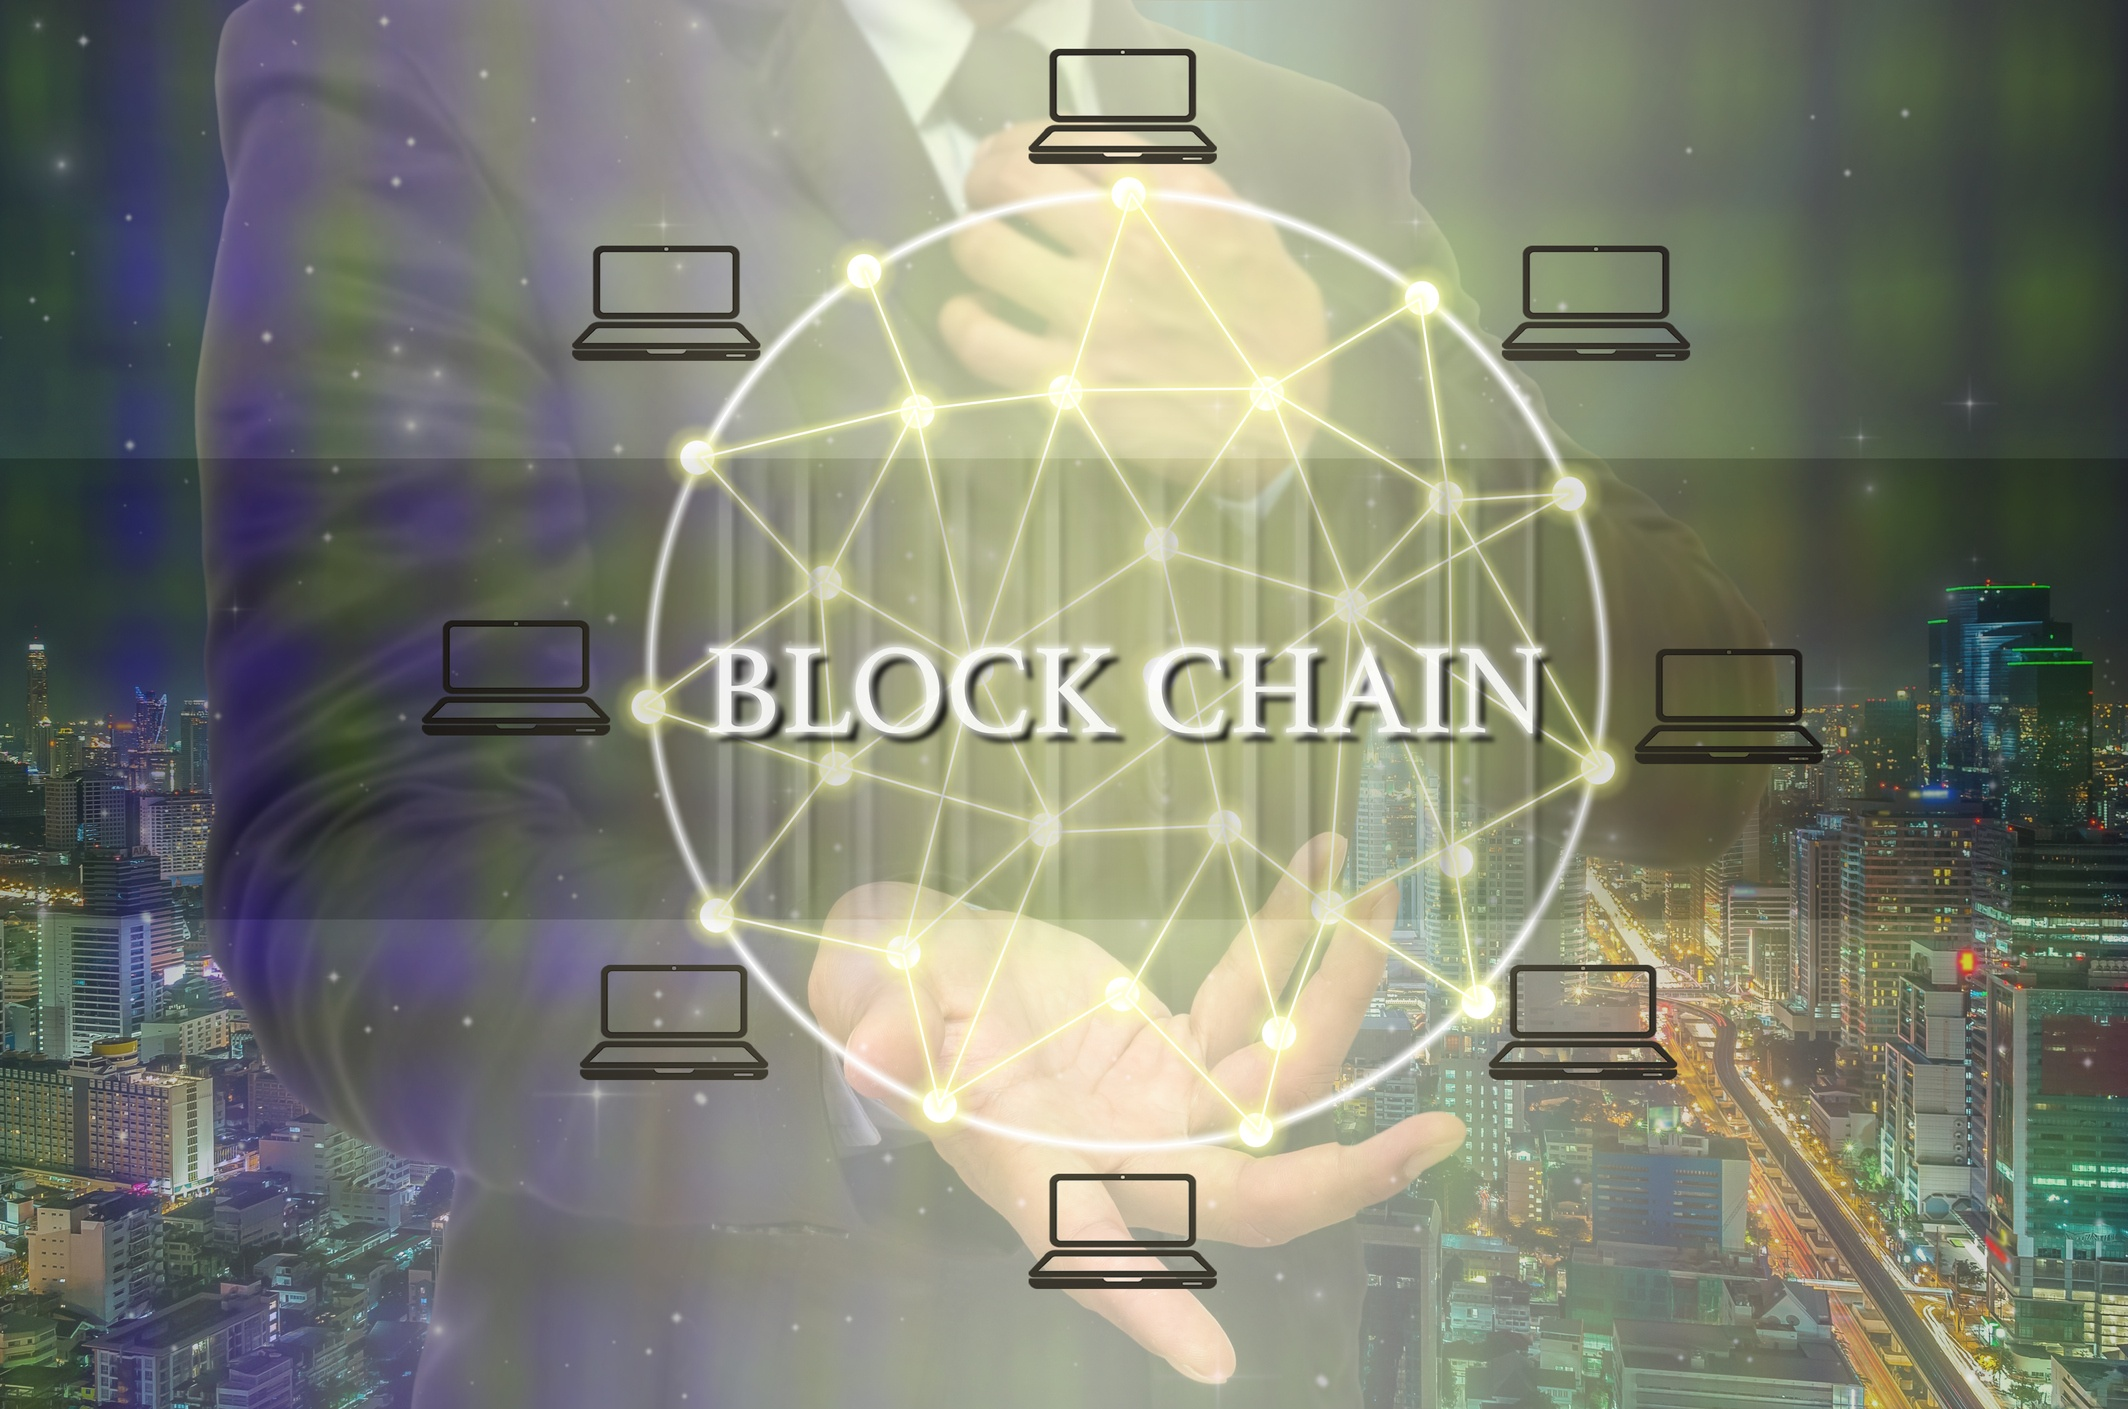 Unbelievable Blockchain Changes Coming to the Construction Industry?